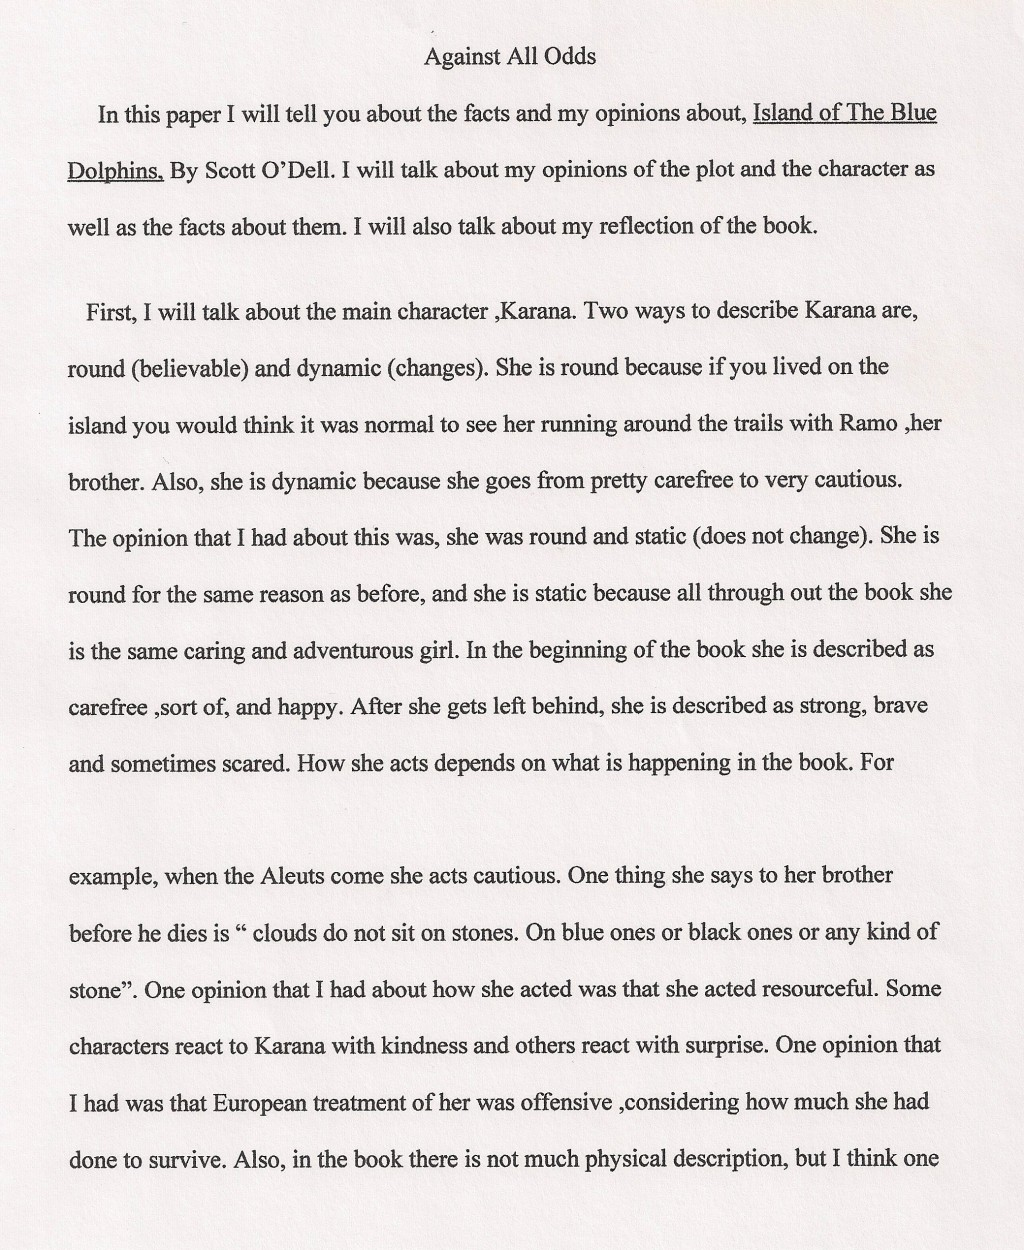 011 Persuasive Essay Writing For 5th Grade Example Week Against All Odds Merifully Samples L Impressive Essays Written By Fifth Graders Sample A Large